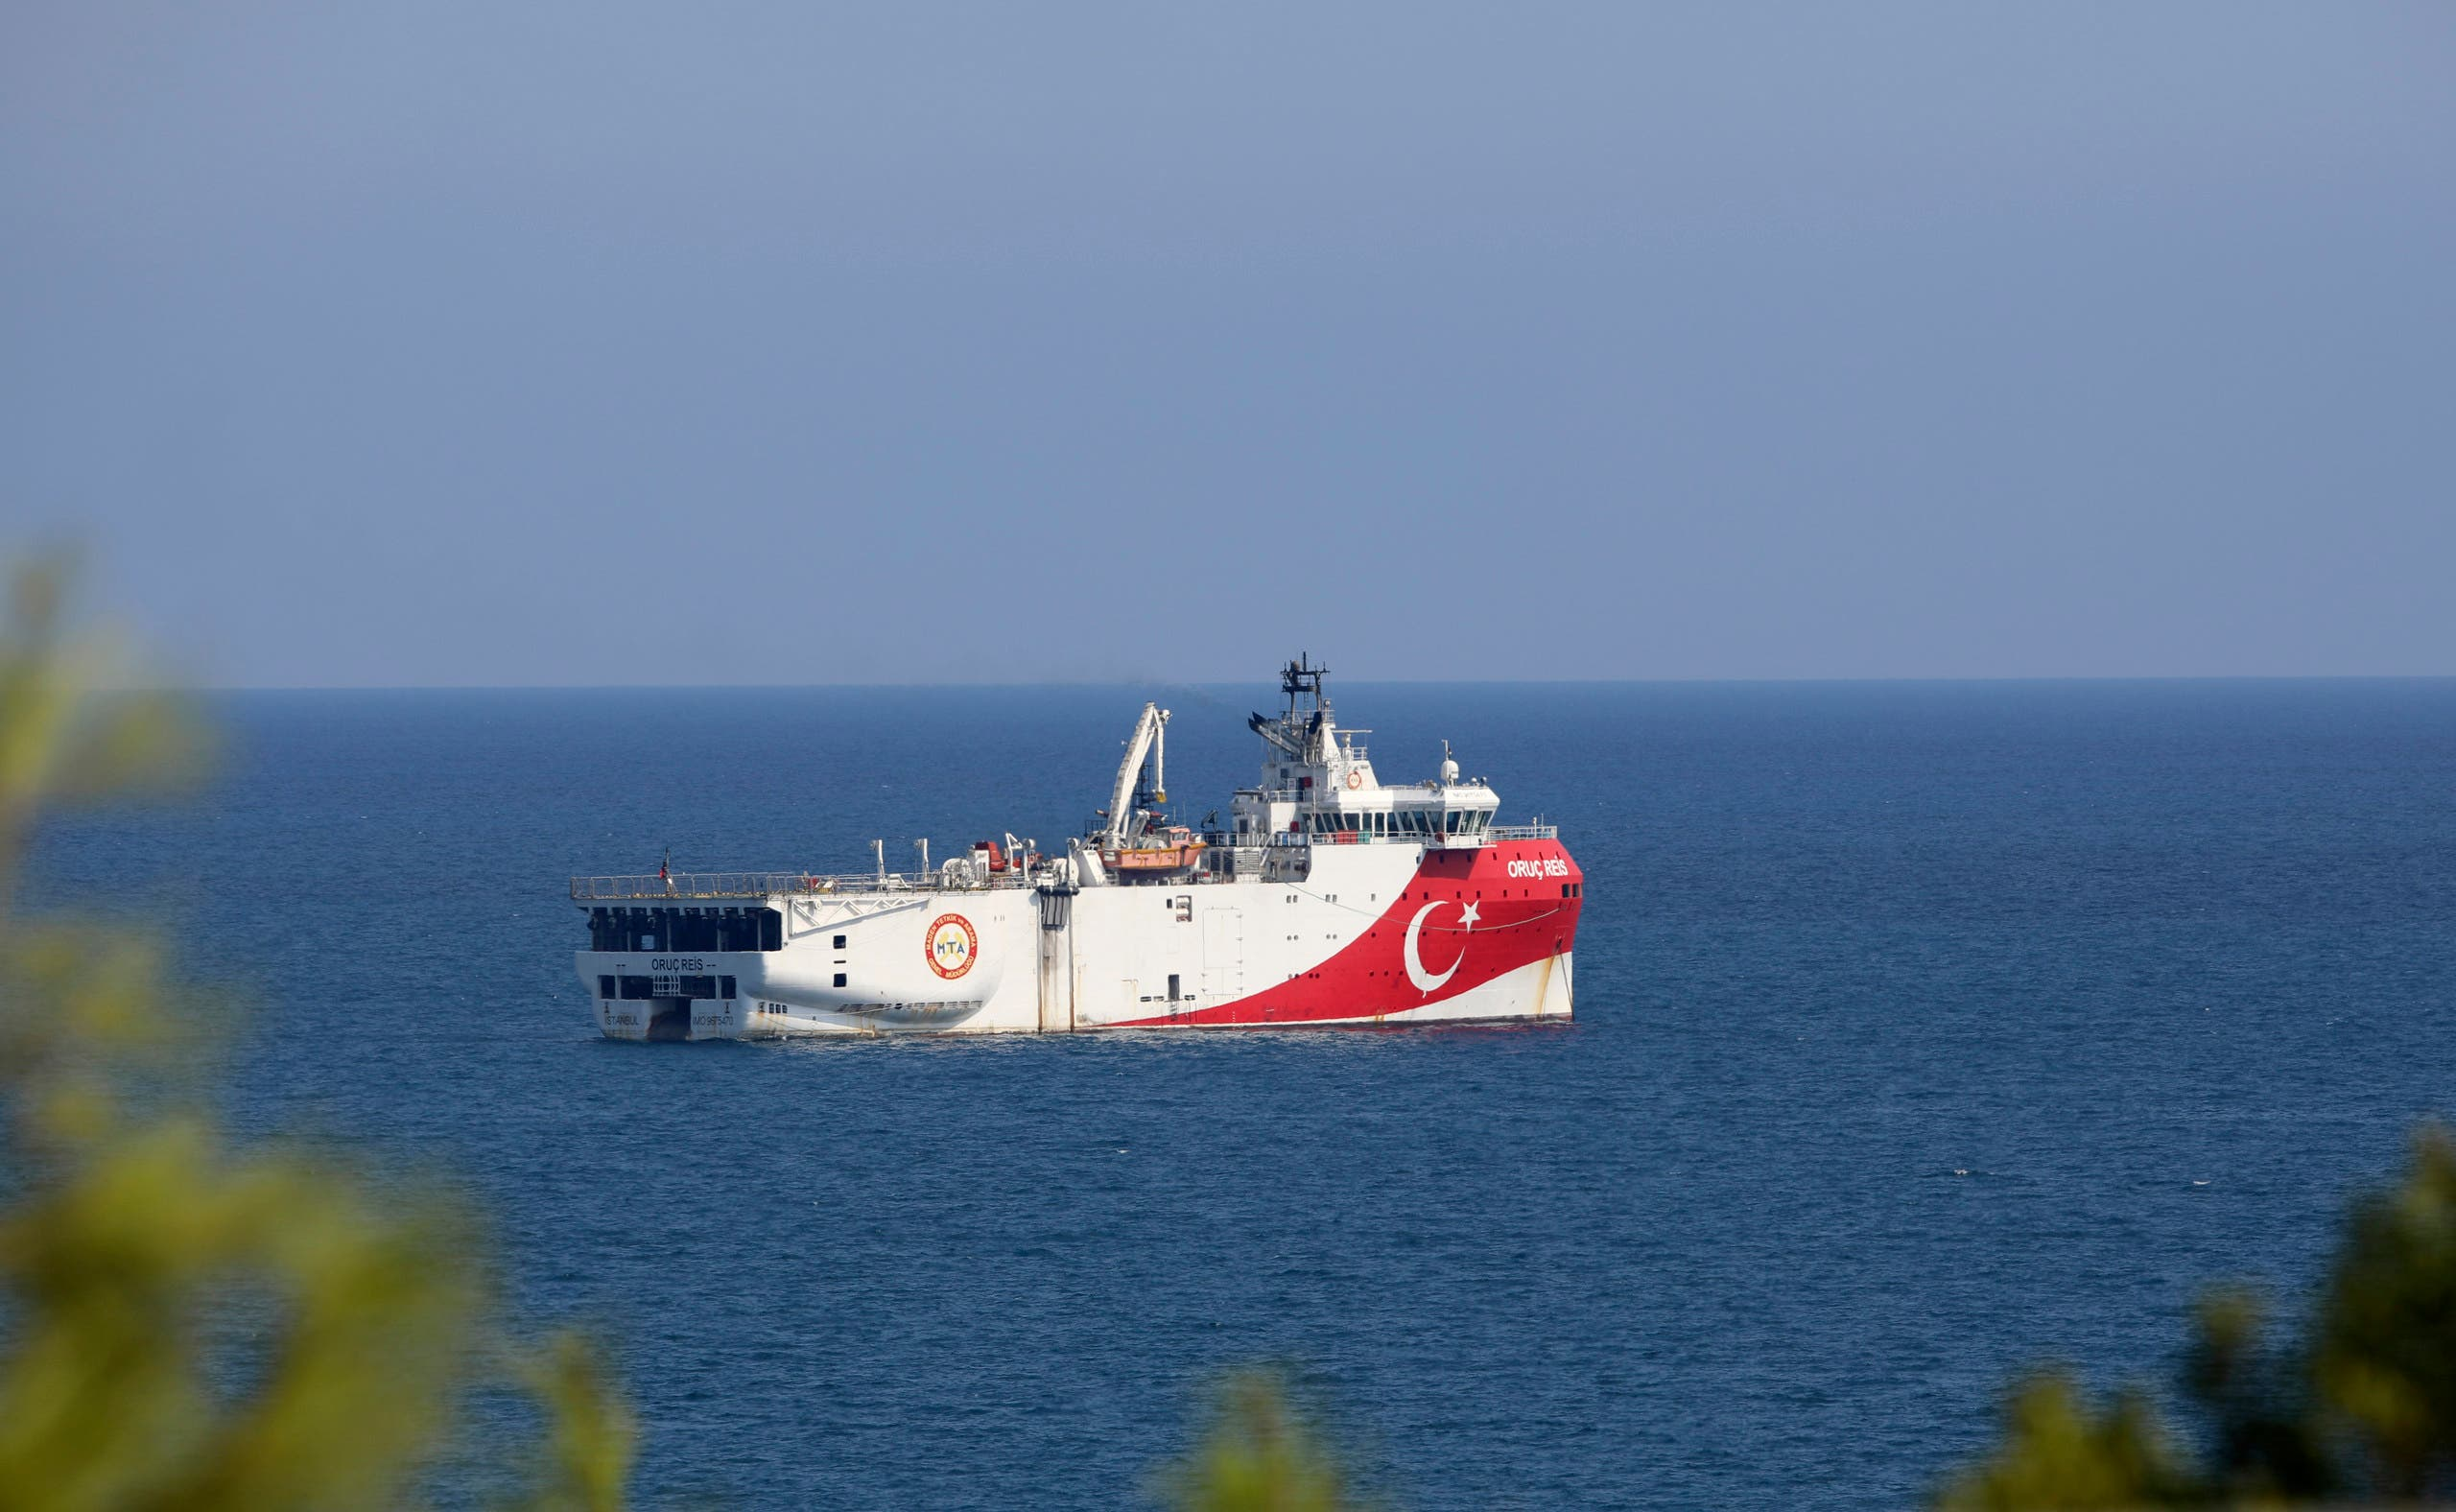 Turkey's research vessel, Oruc Reis anchored off the coast of Antalya on the Mediterranean, Turkey, September 13, 2020. (AP/Burhan Ozbilici)